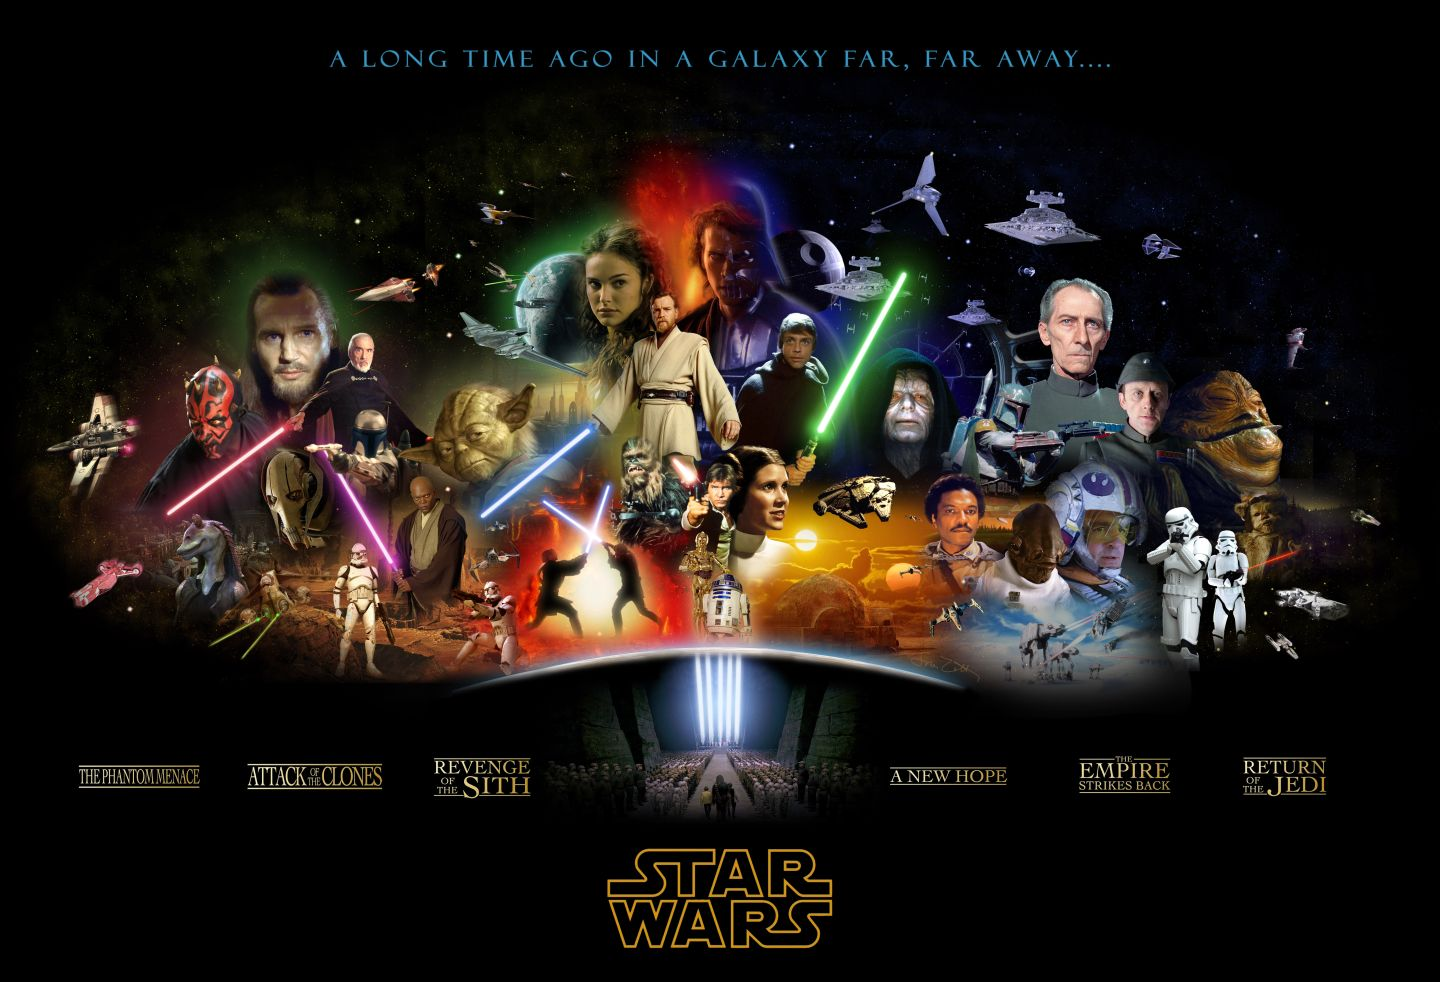 Star wars complete saga poster star wars 425795 1440 982